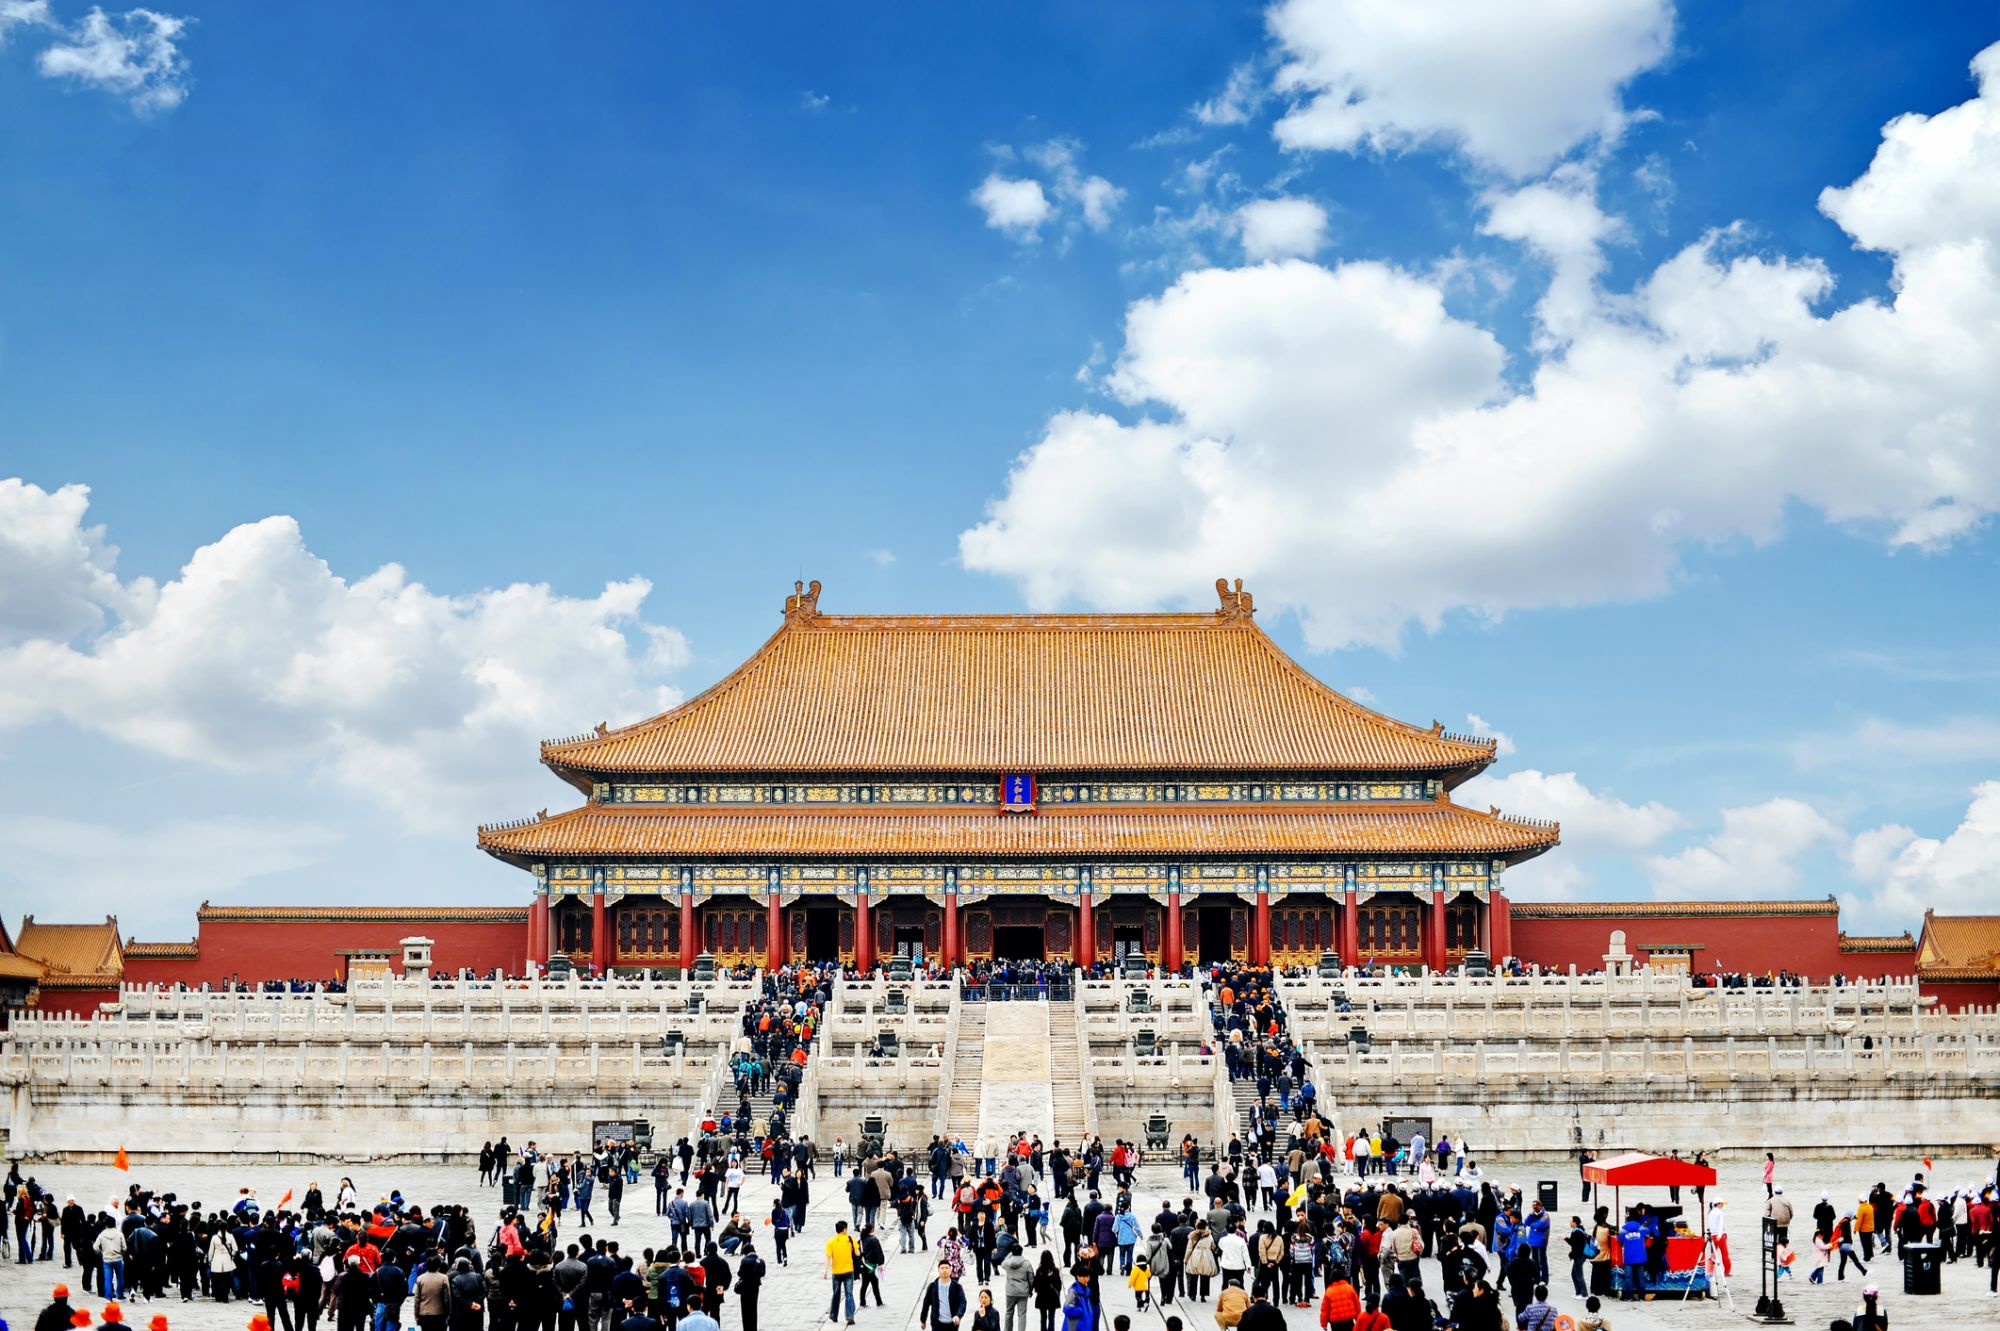 Entrance to the forbidden city in Beijing, China. Lot's of tourists meeting in front of the temple.